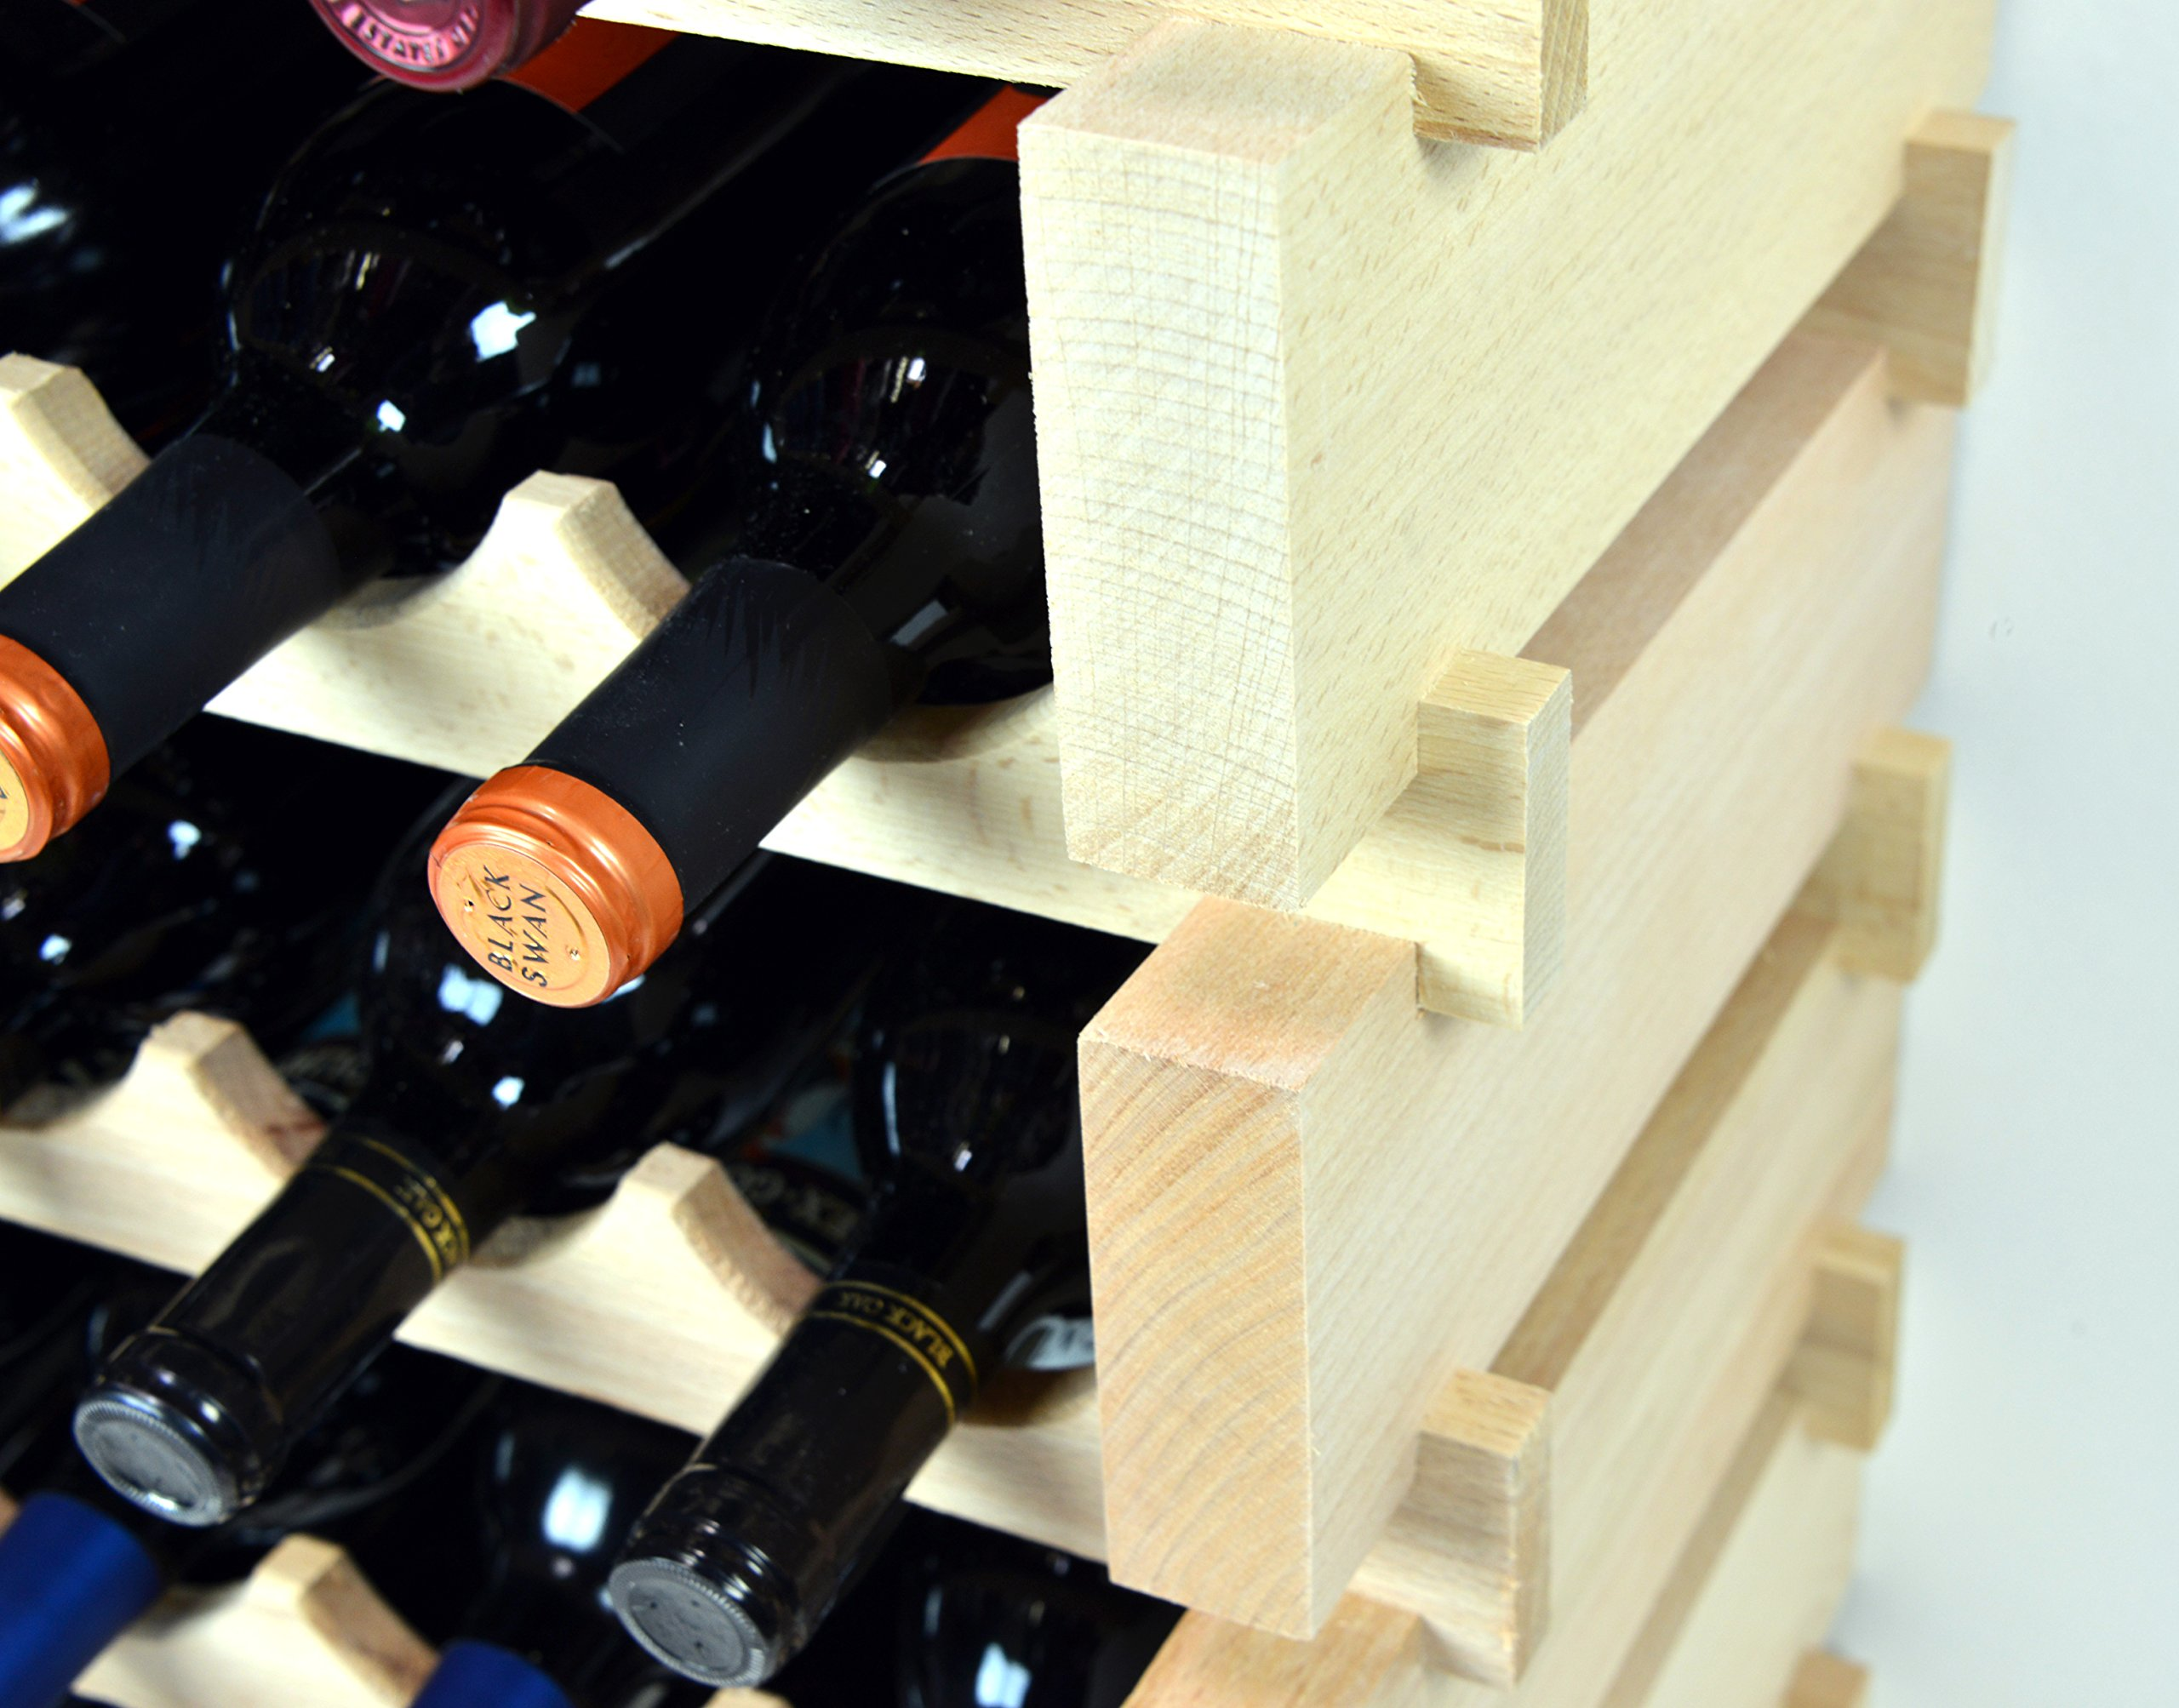 Modular Wine Rack Pine Wood 32-96 Bottle Capacity Storage 8 Bottles Across up to 12 Rows Stackable Newest Improved Model (96 Bottles - 12 Rows) by sfDisplay.com,LLC. (Image #5)